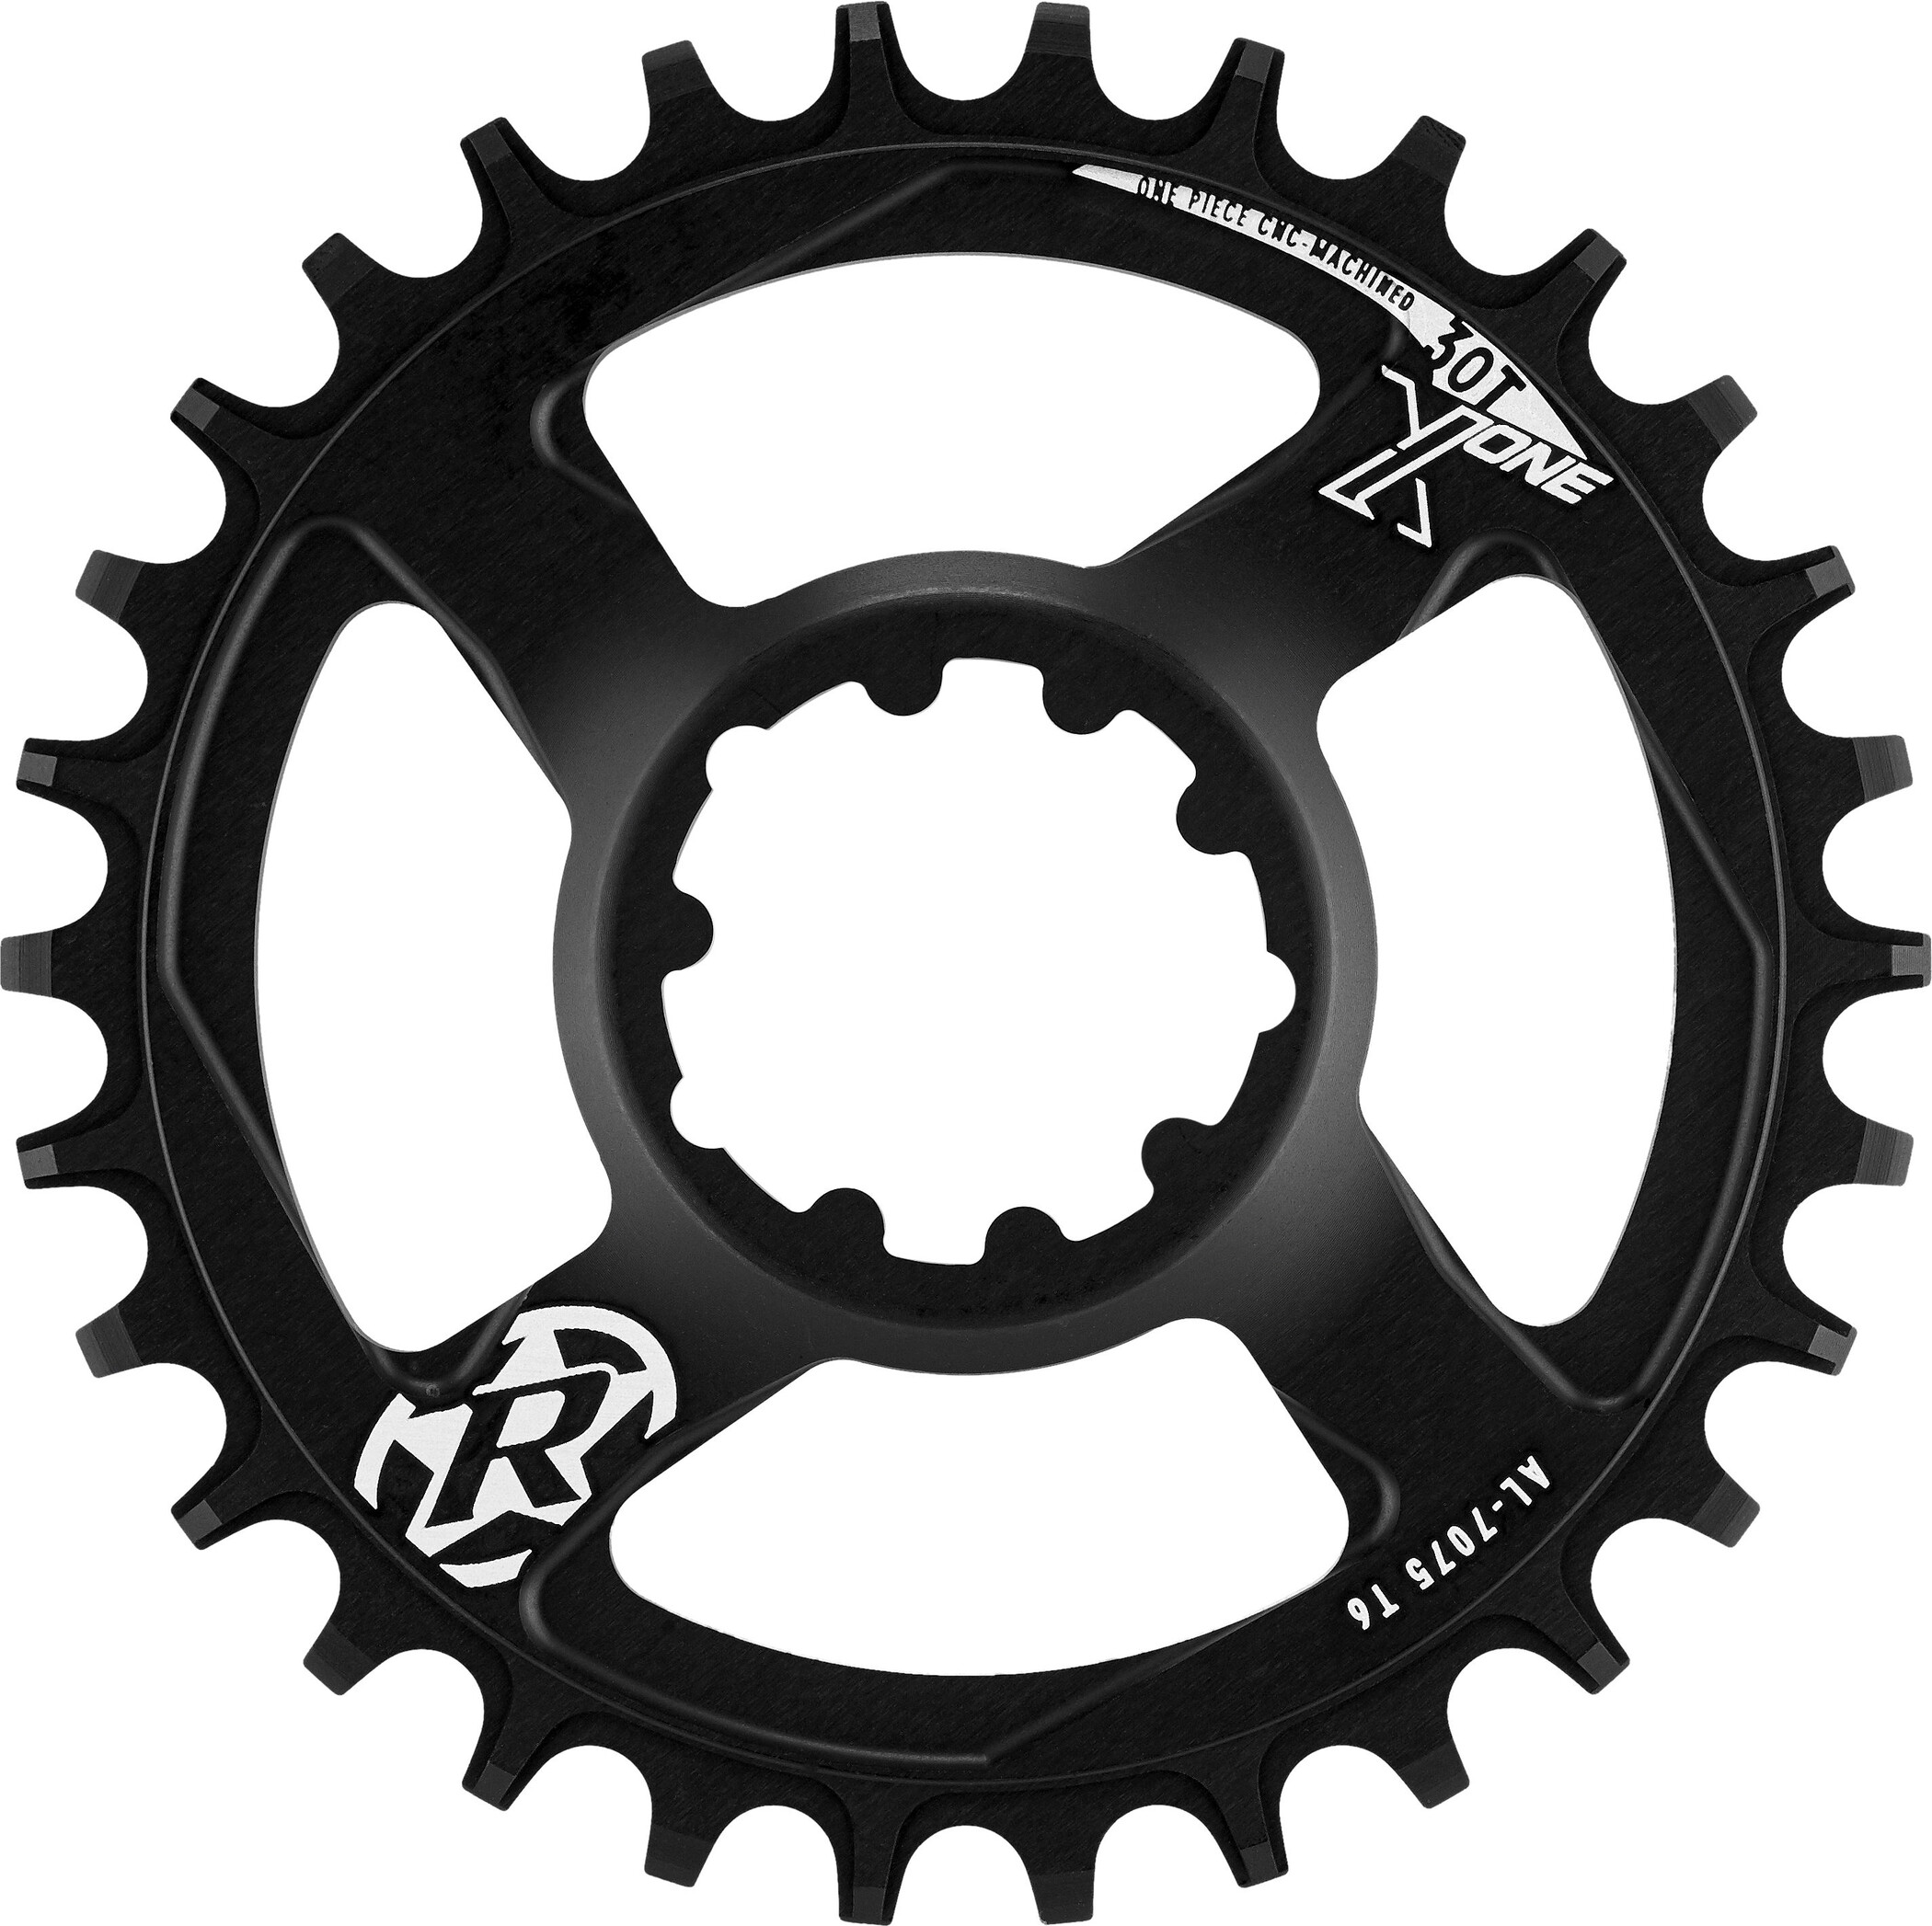 Reverse CW X-ONE Chainring Narrow Wide Re-Sync, black | chainrings_component